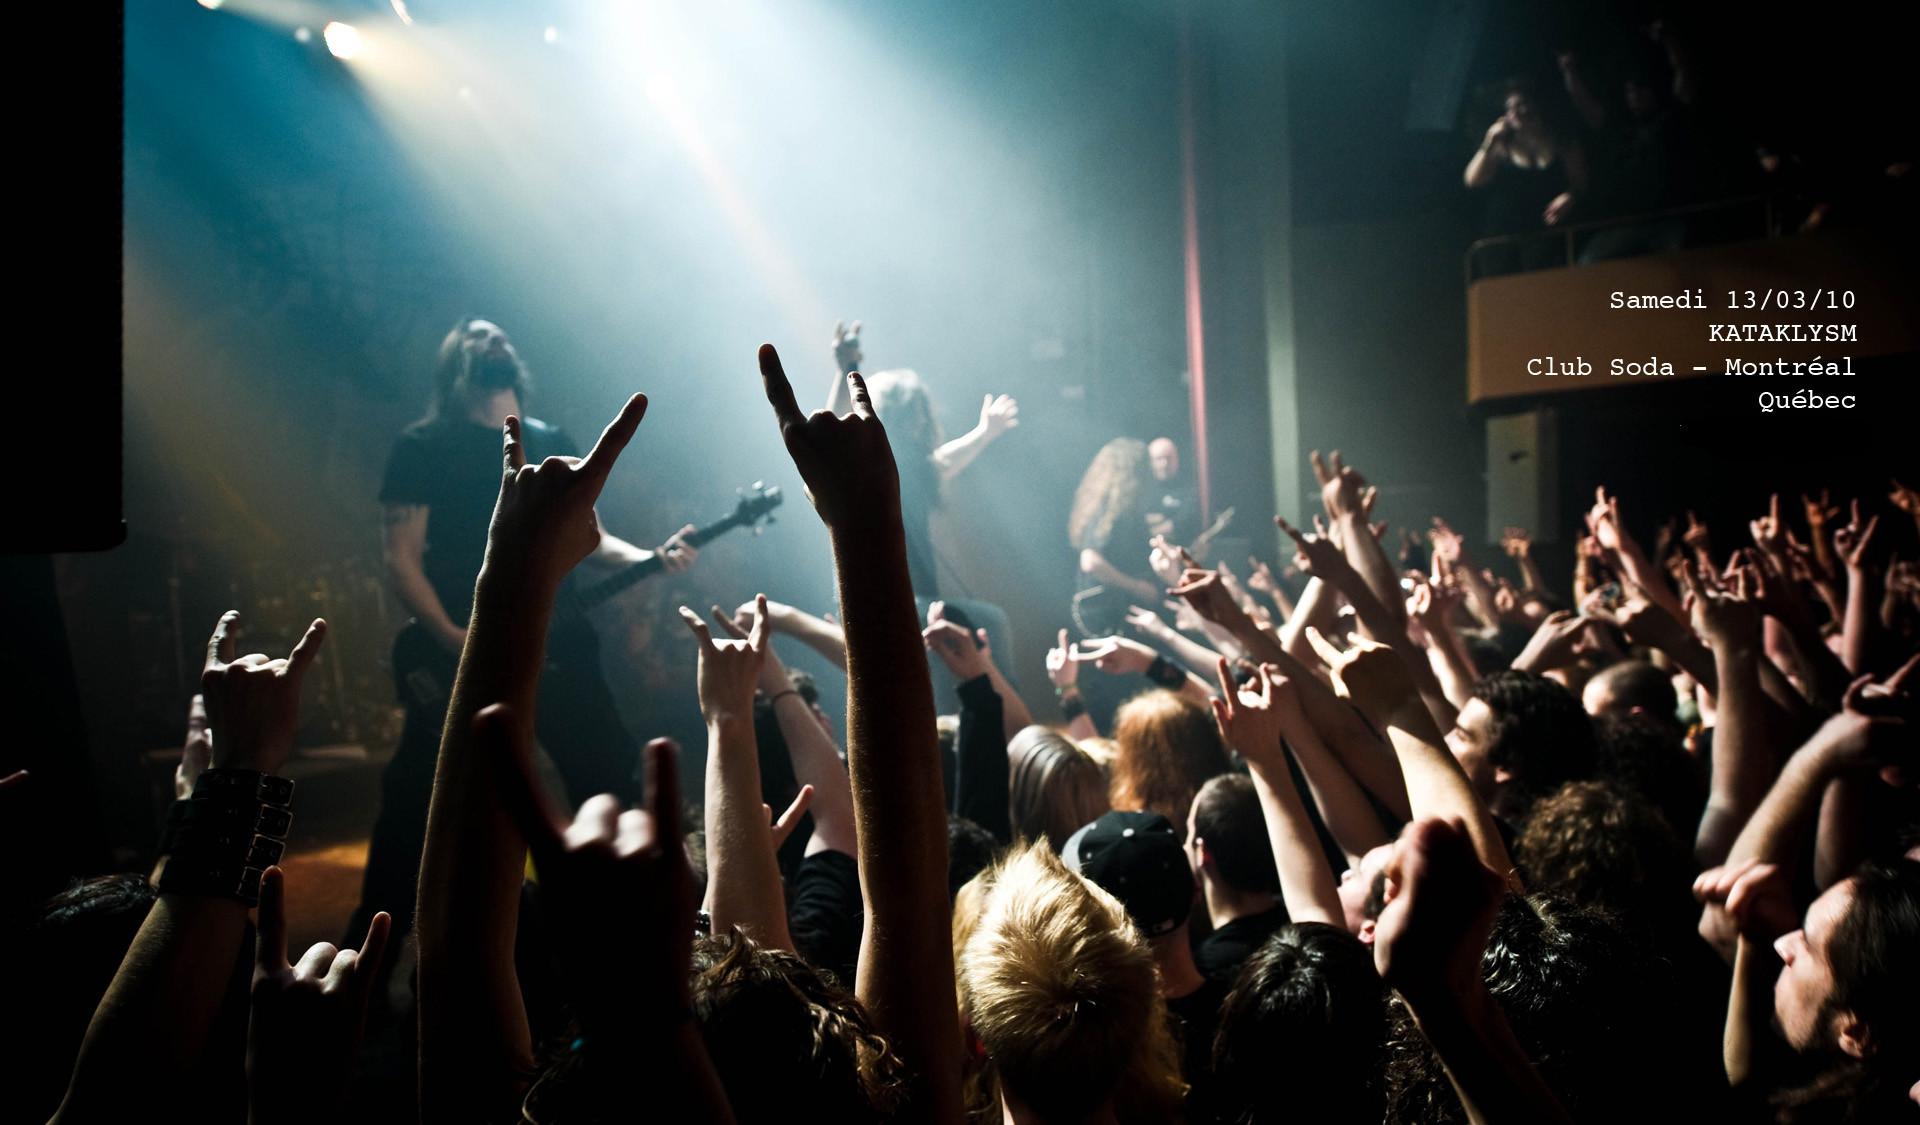 concert concerts crowd wallpaper | | 86210 | WallpaperUP .